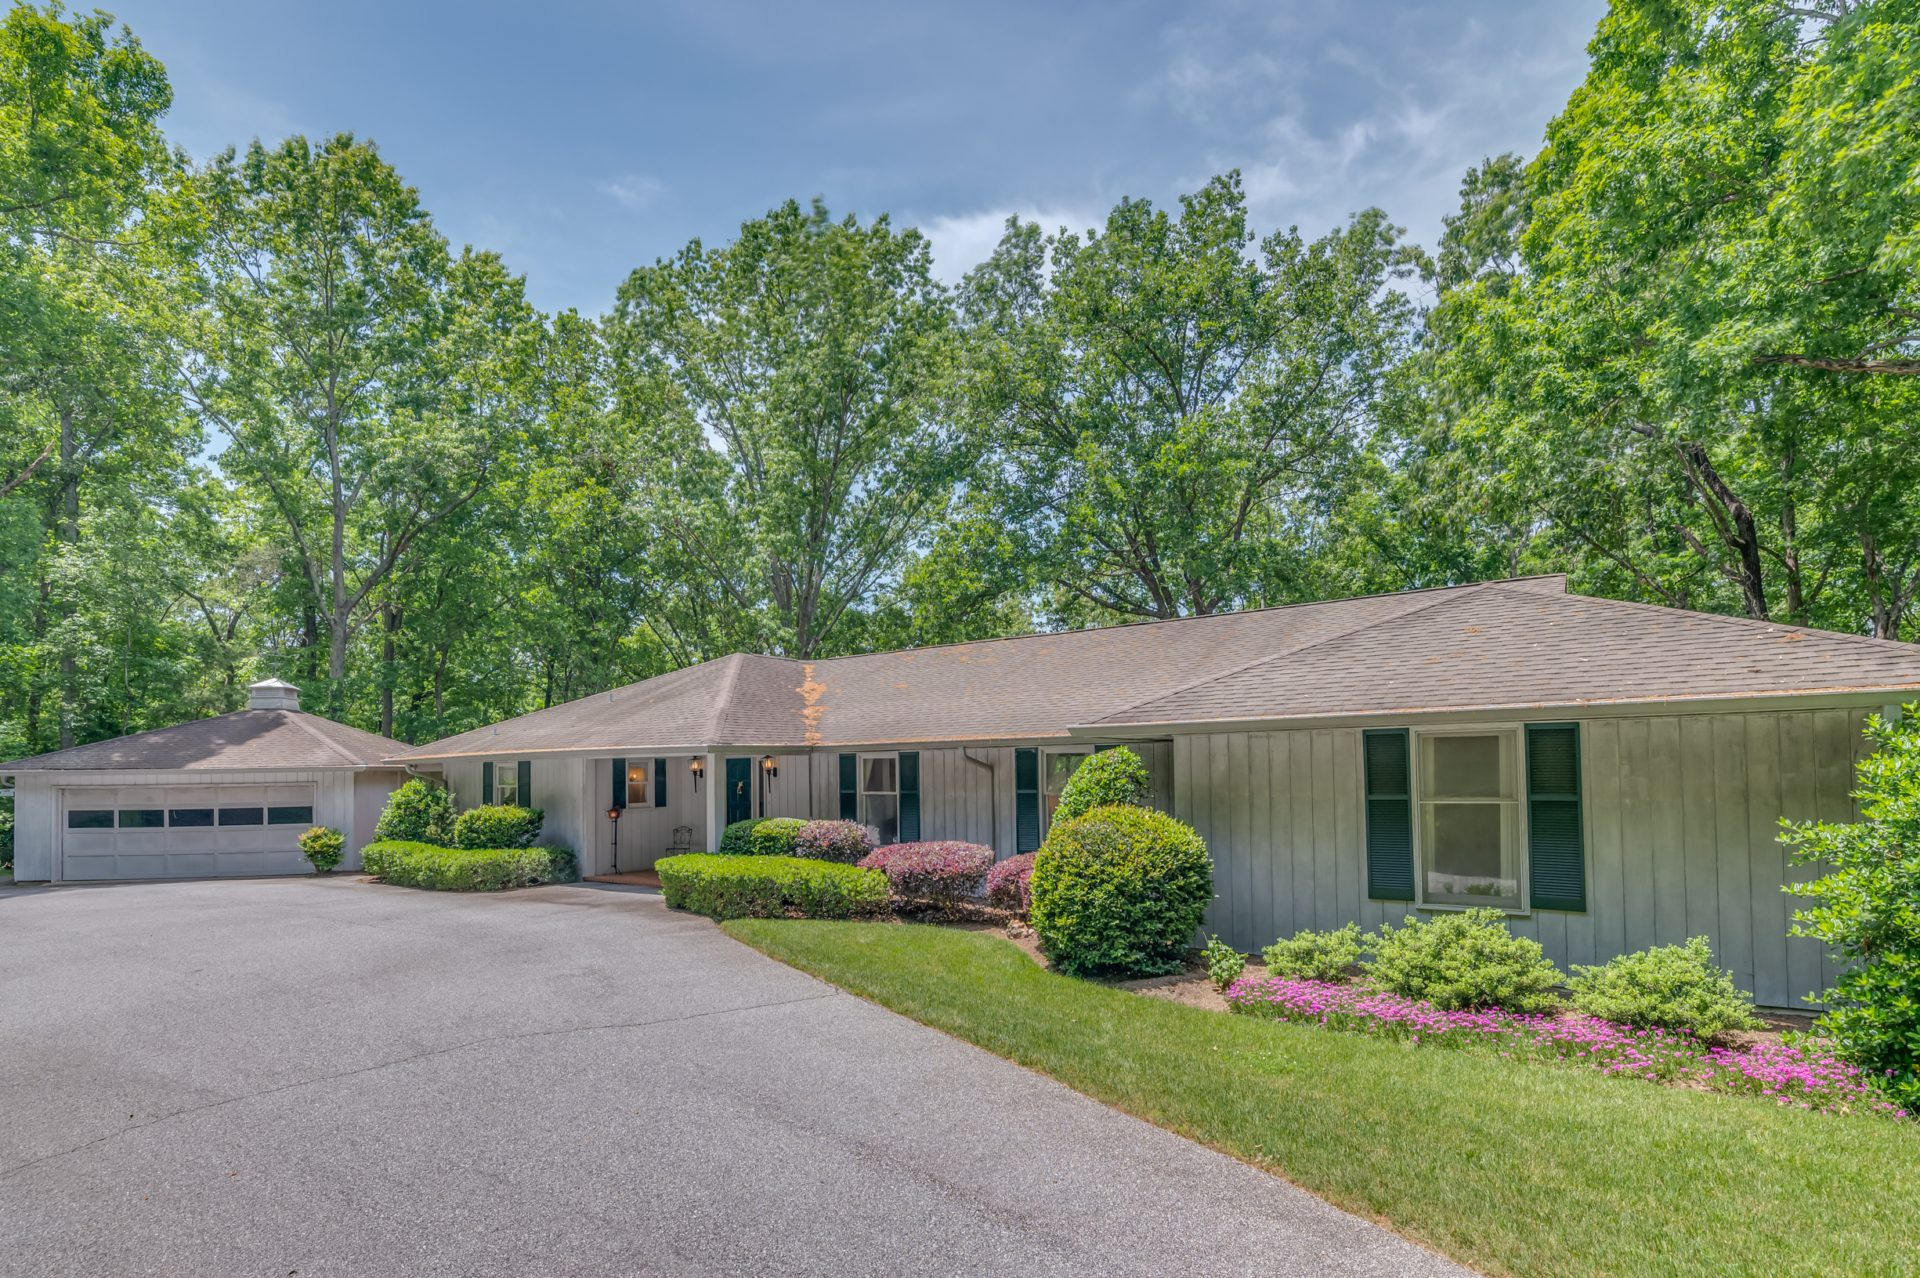 SOLD: Red Fox Circle with beautifully landscaped lot